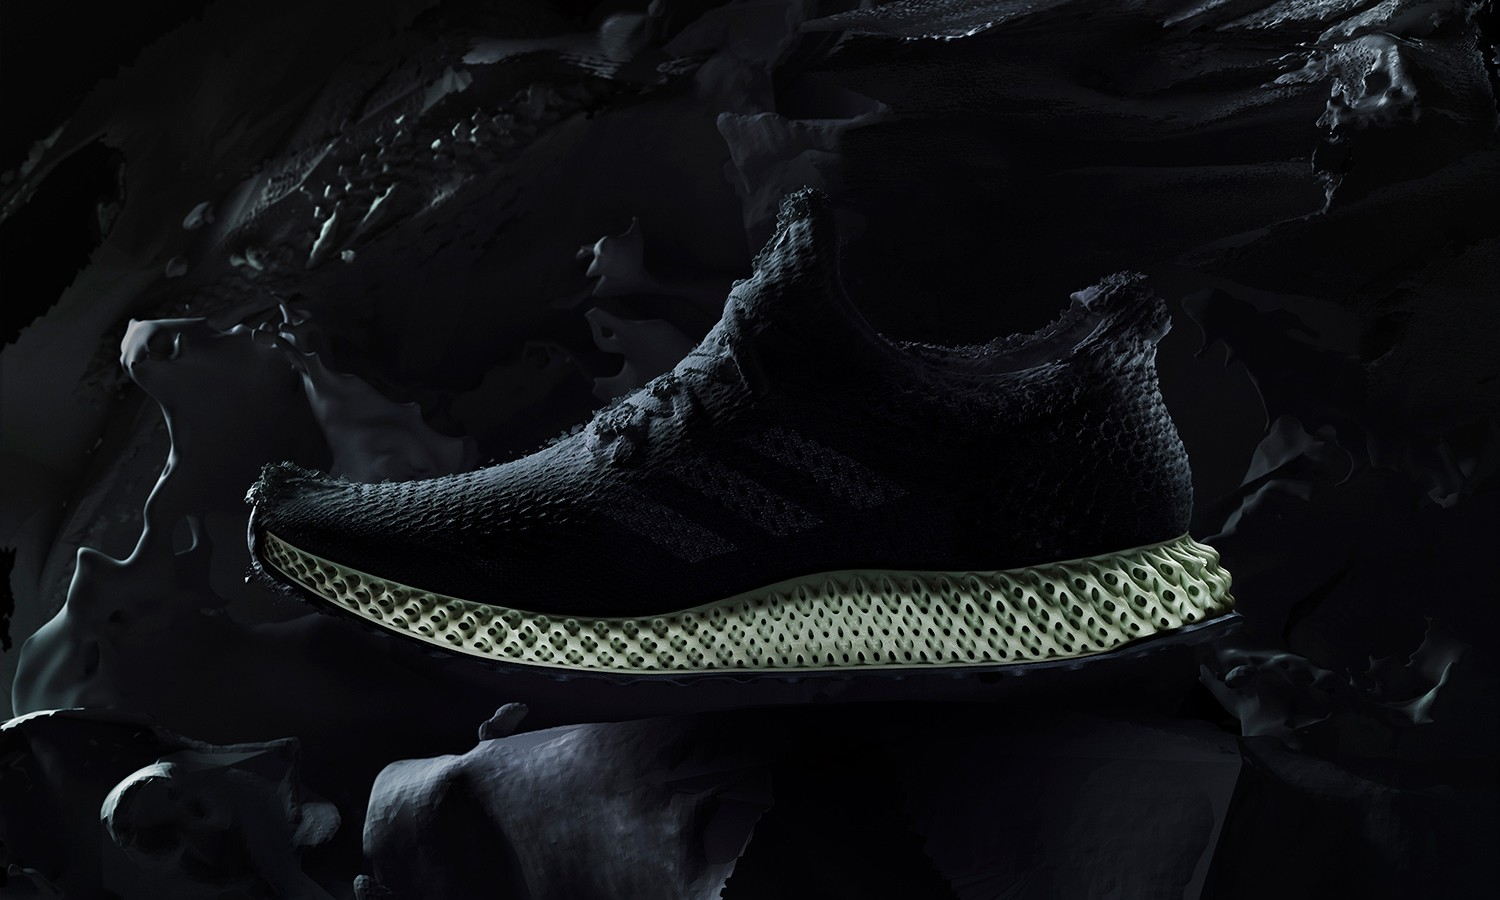 初代 adidas Futurecraft 4D 即将回归